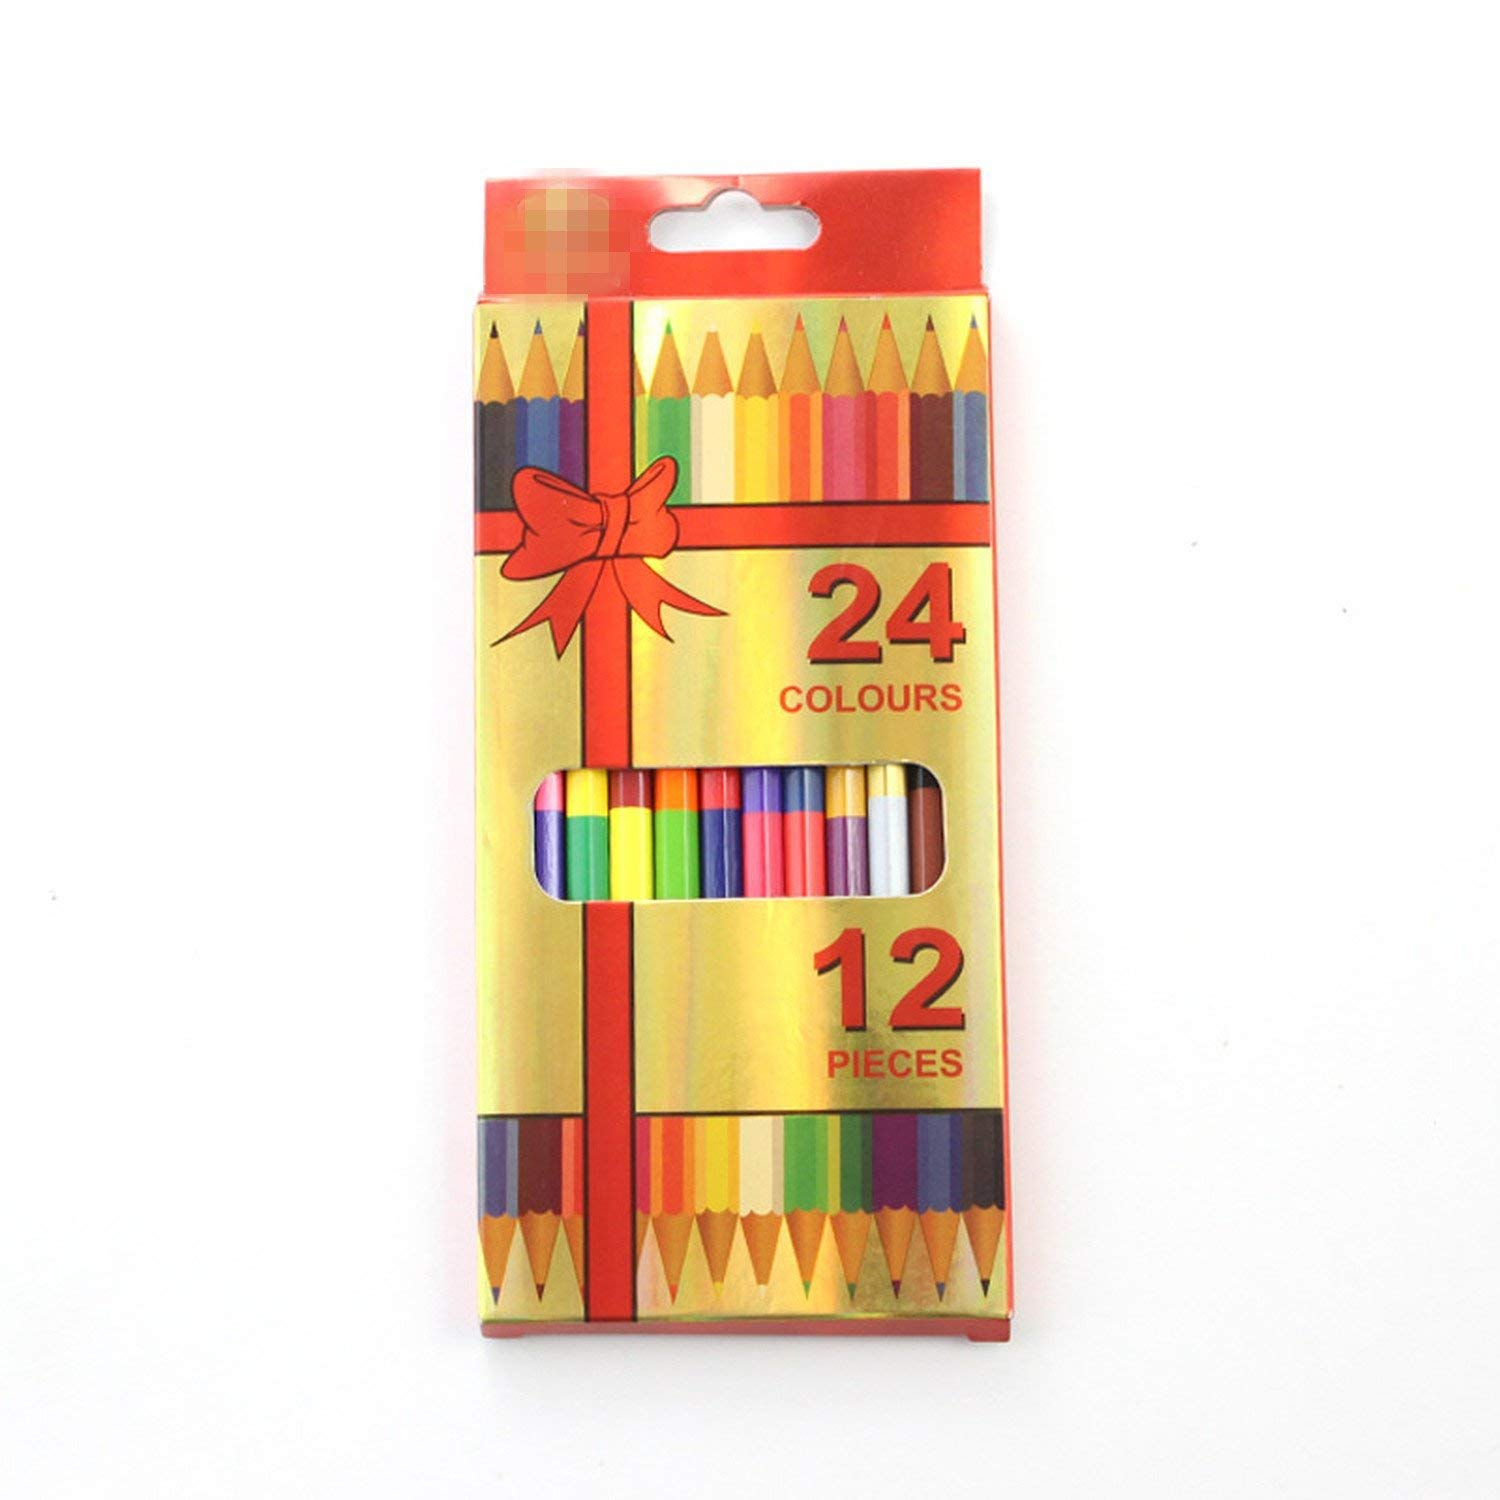 12Pcs Double-headed Colored Pencil (24 Colors) Art Set Colour Pencil Kid Drawing Tools School Office Supplies Papelaria